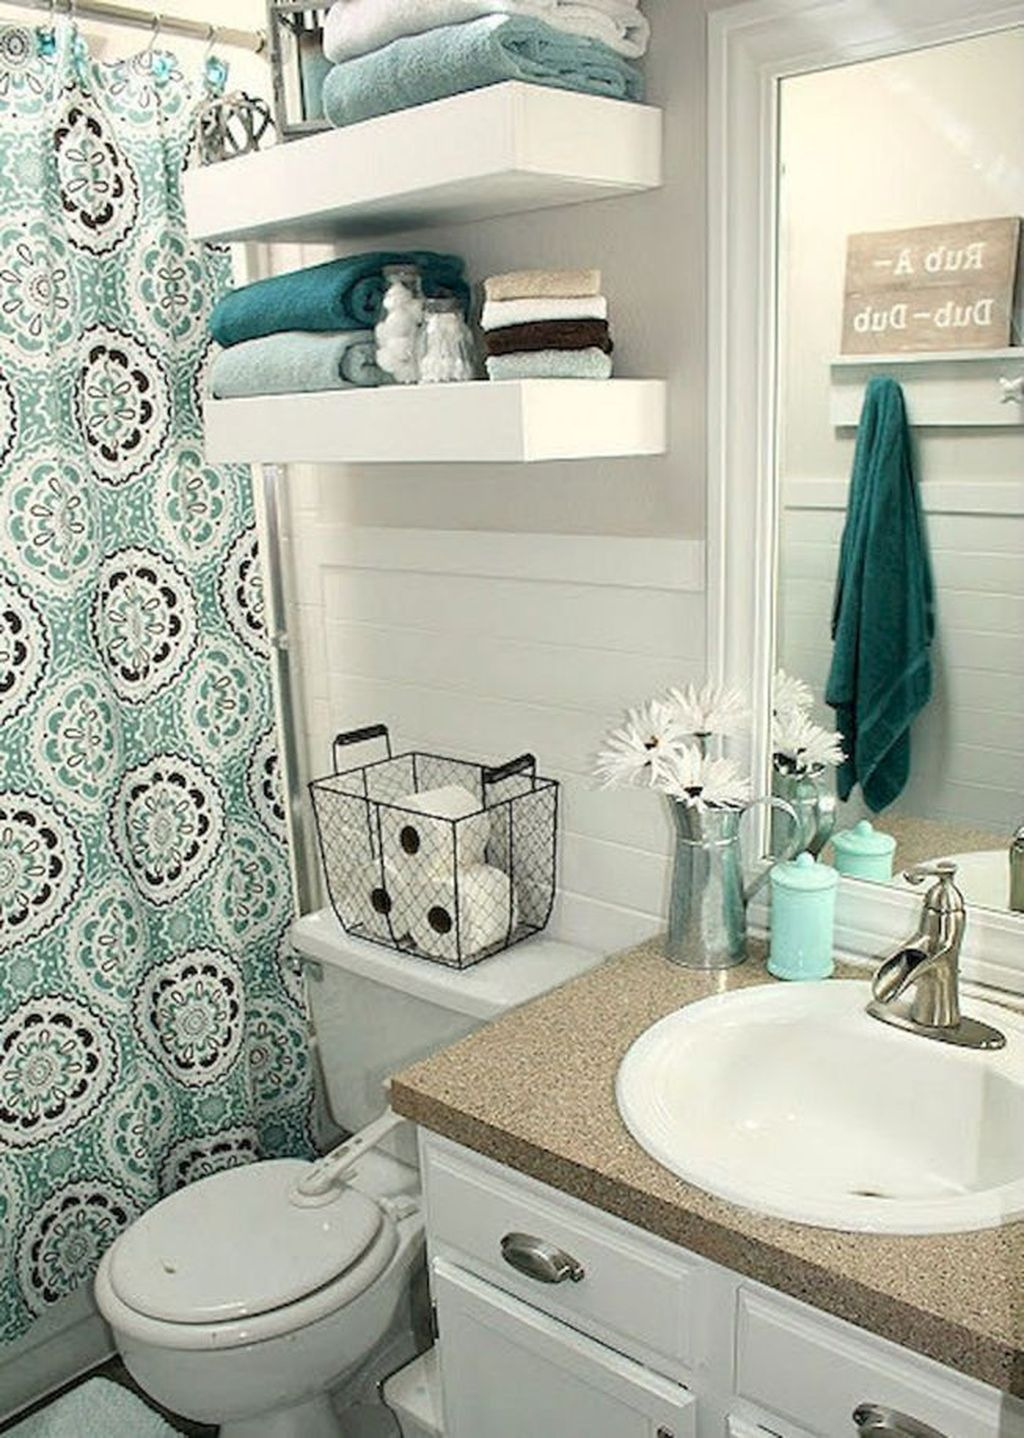 Decorating Ideas for Small Bathrooms with Pictures New Awesome 75 First Apartment Decorating Ideas On A Bud